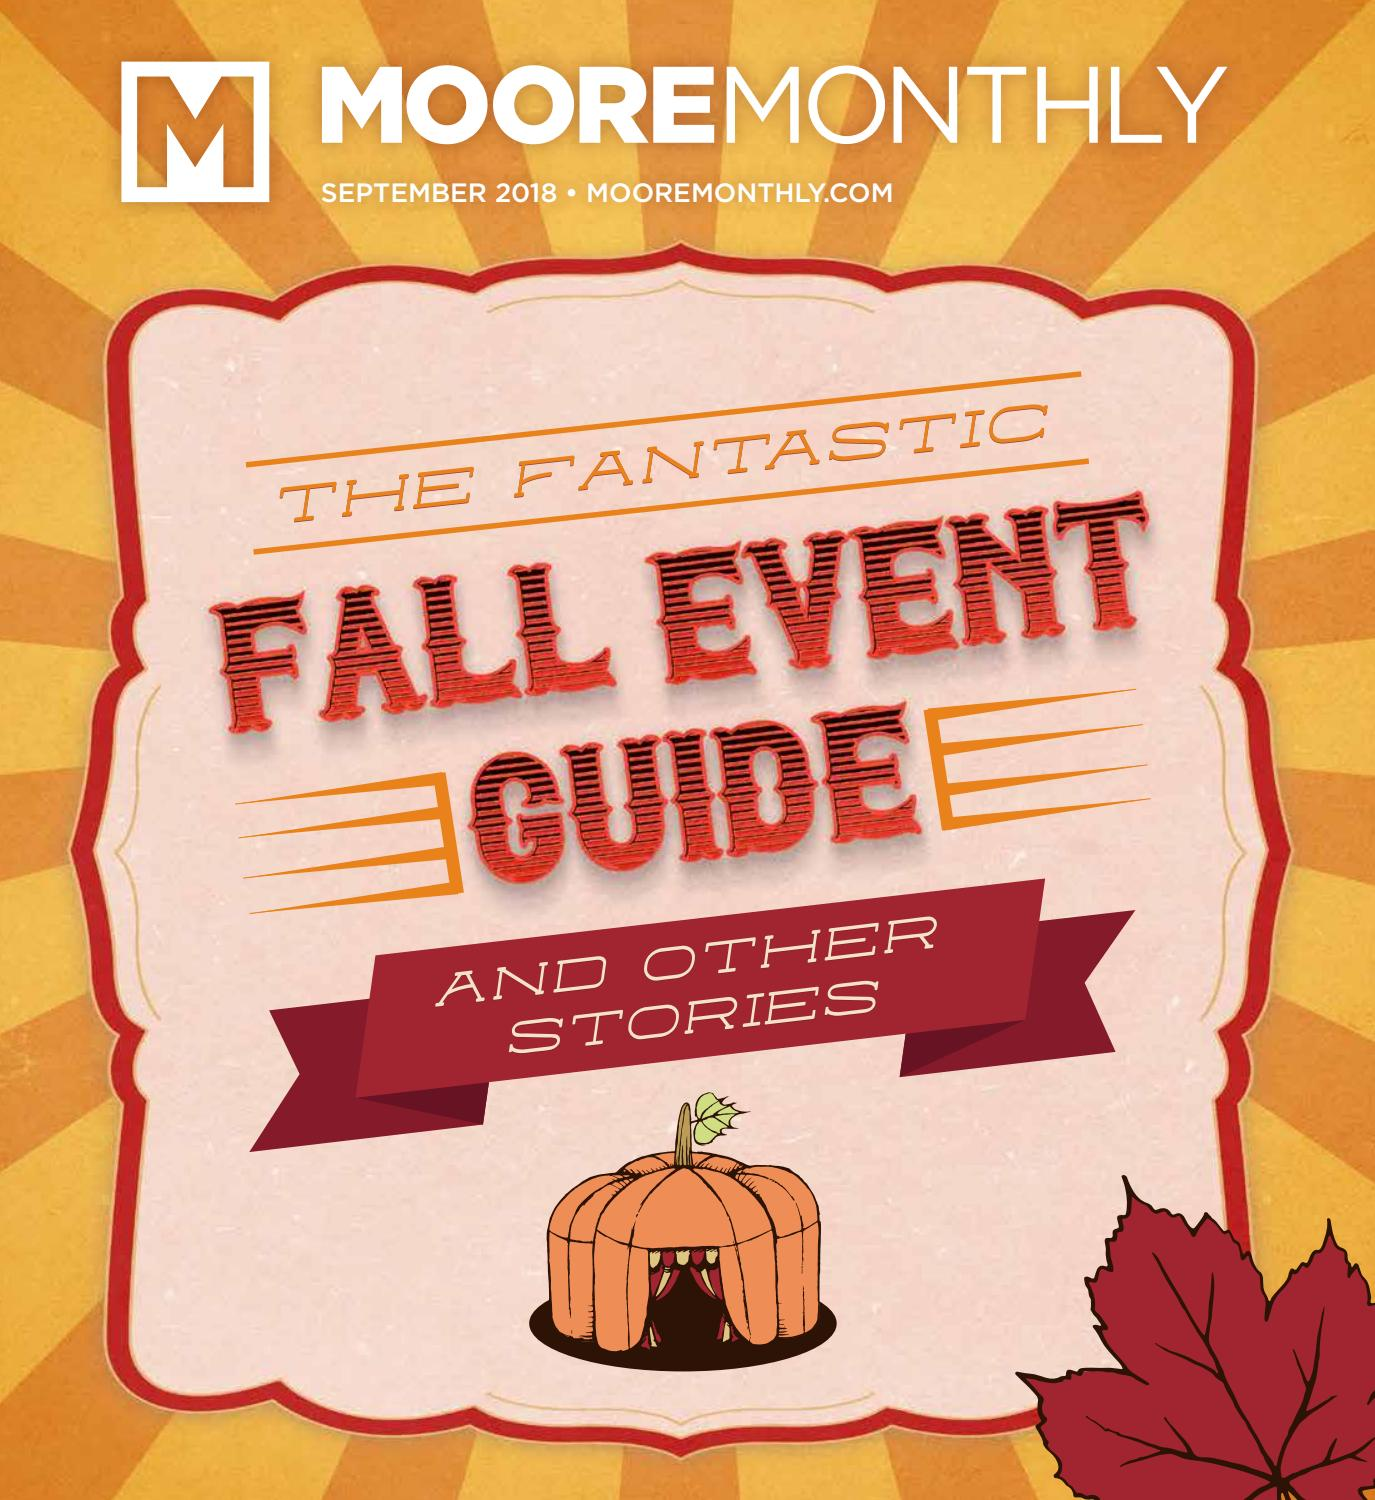 MM September 2018 by Moore Monthly - issuu